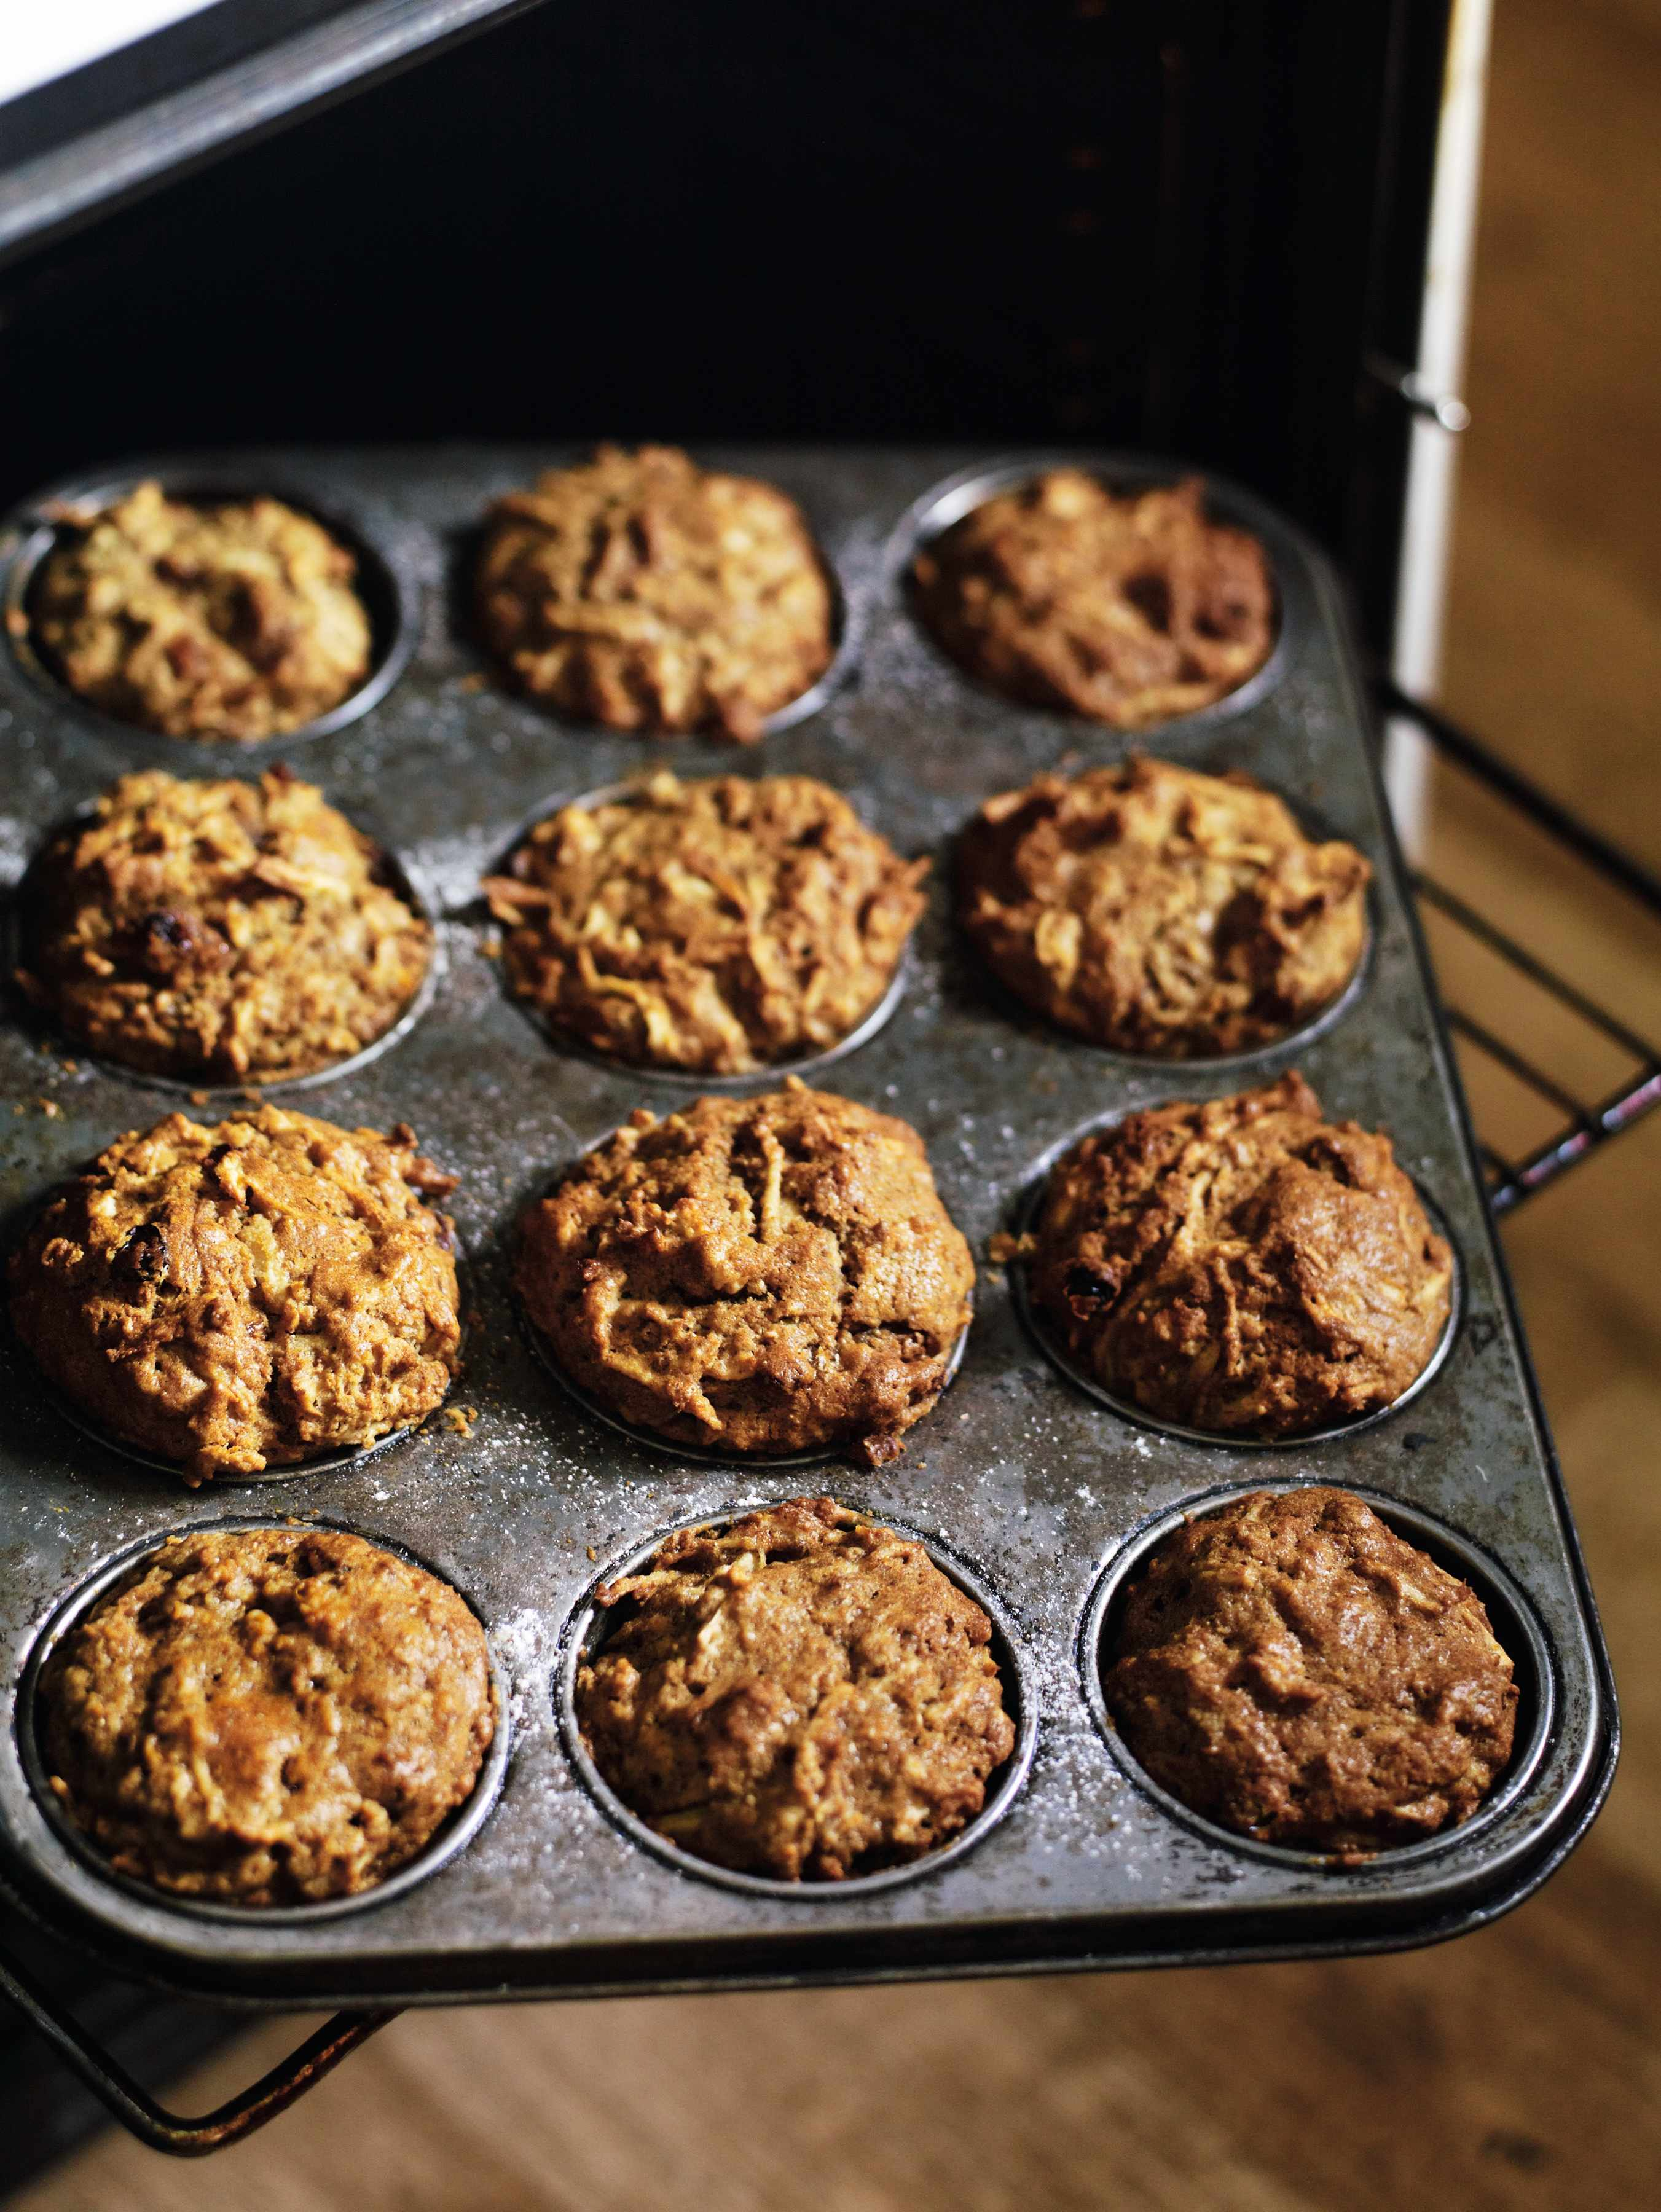 Recipe for parsnip and apple muffins